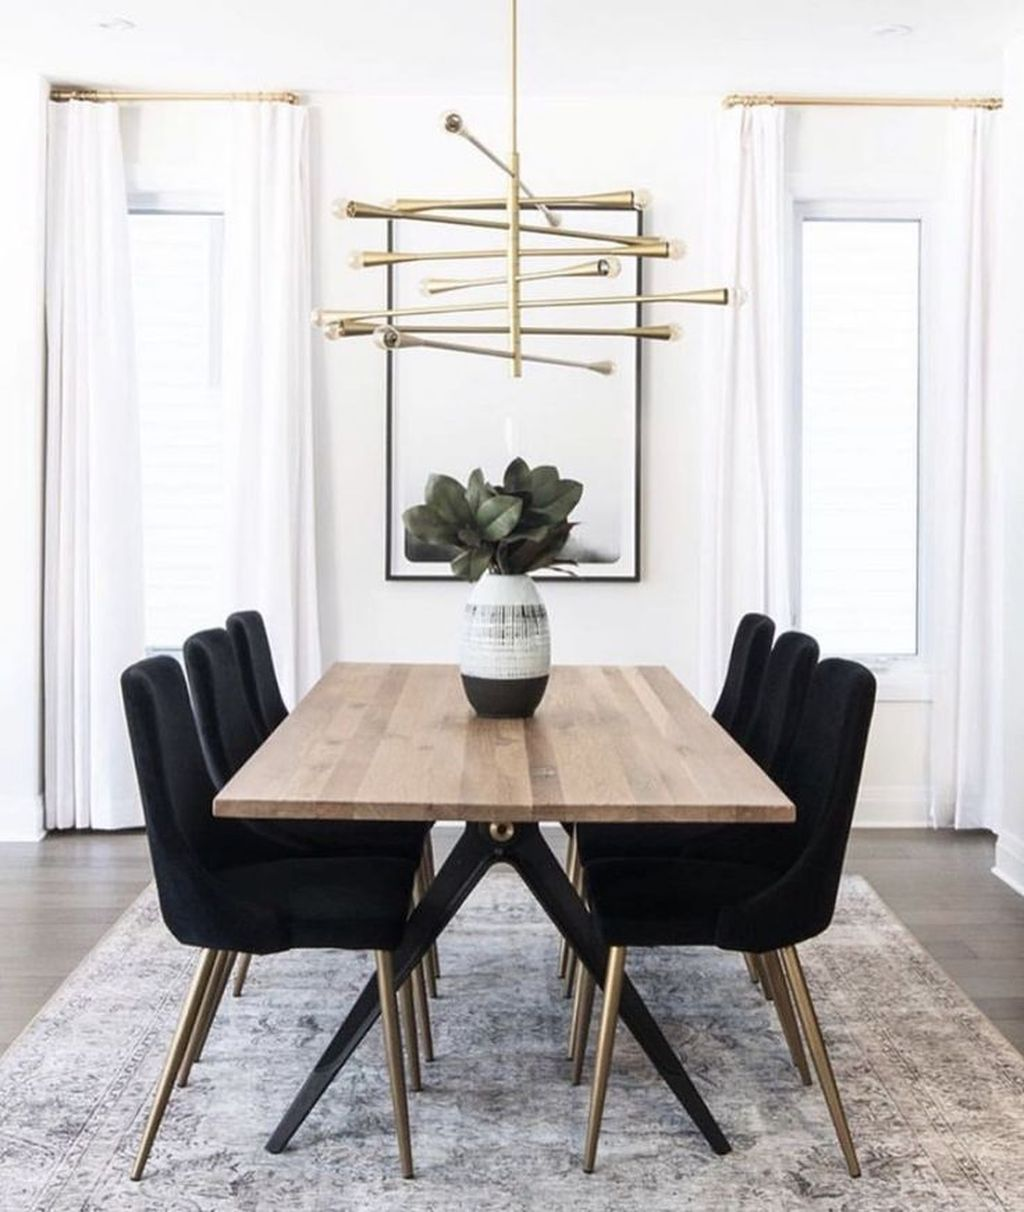 Admirable Dining Room Design Ideas You Will Love 32 1